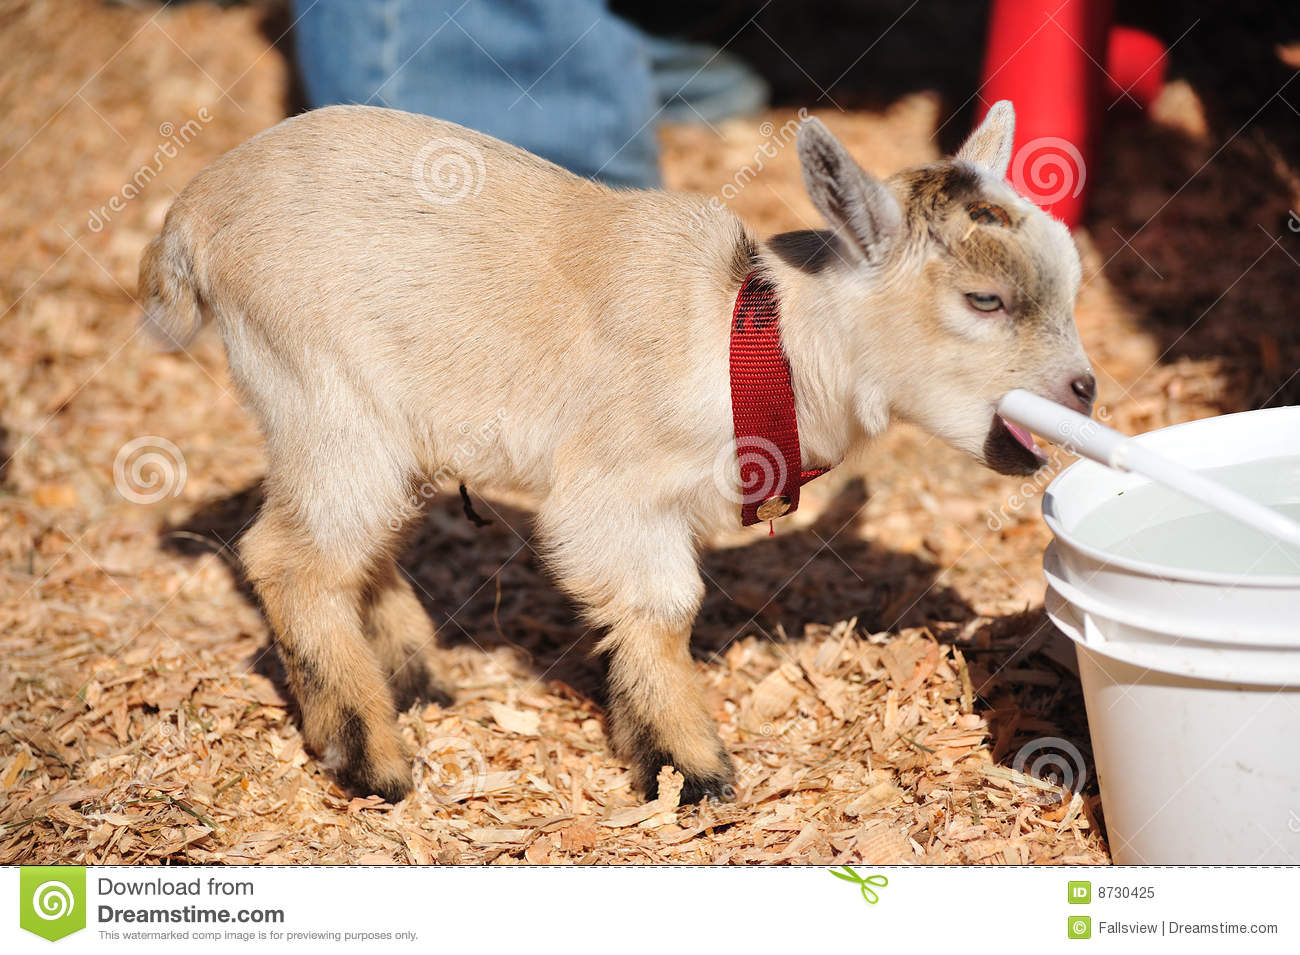 Baby Goat Royalty Free Stock Photo - Image: 8730425